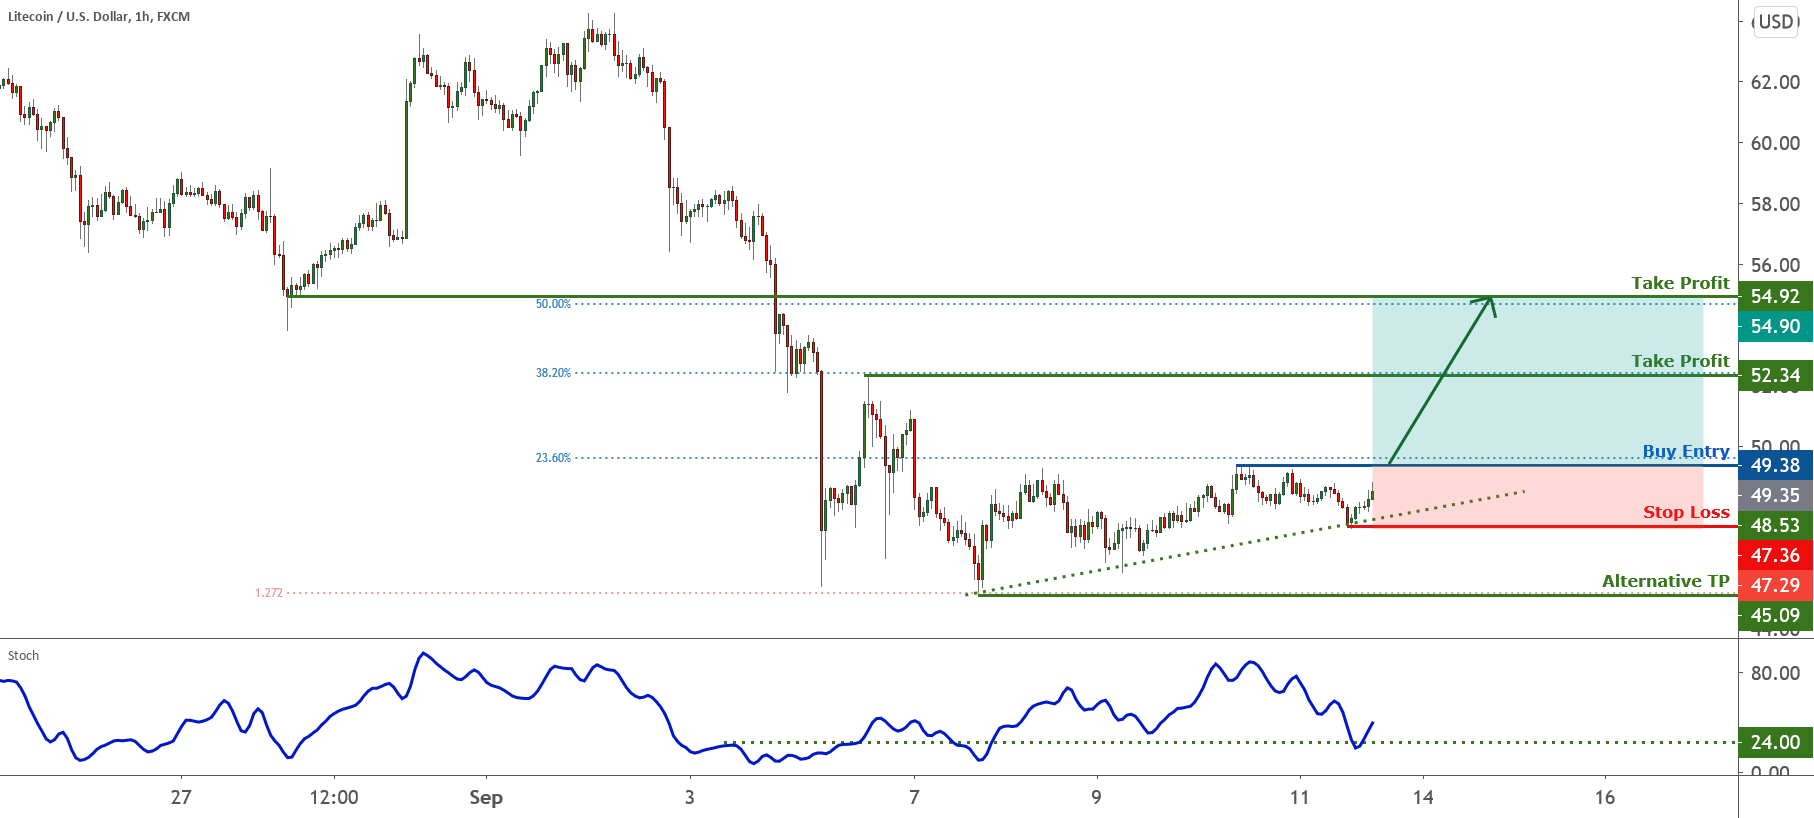 LTC bounced from support, further rise expected | 11 Sept 2020 for FX:LTCUSD by FXCM